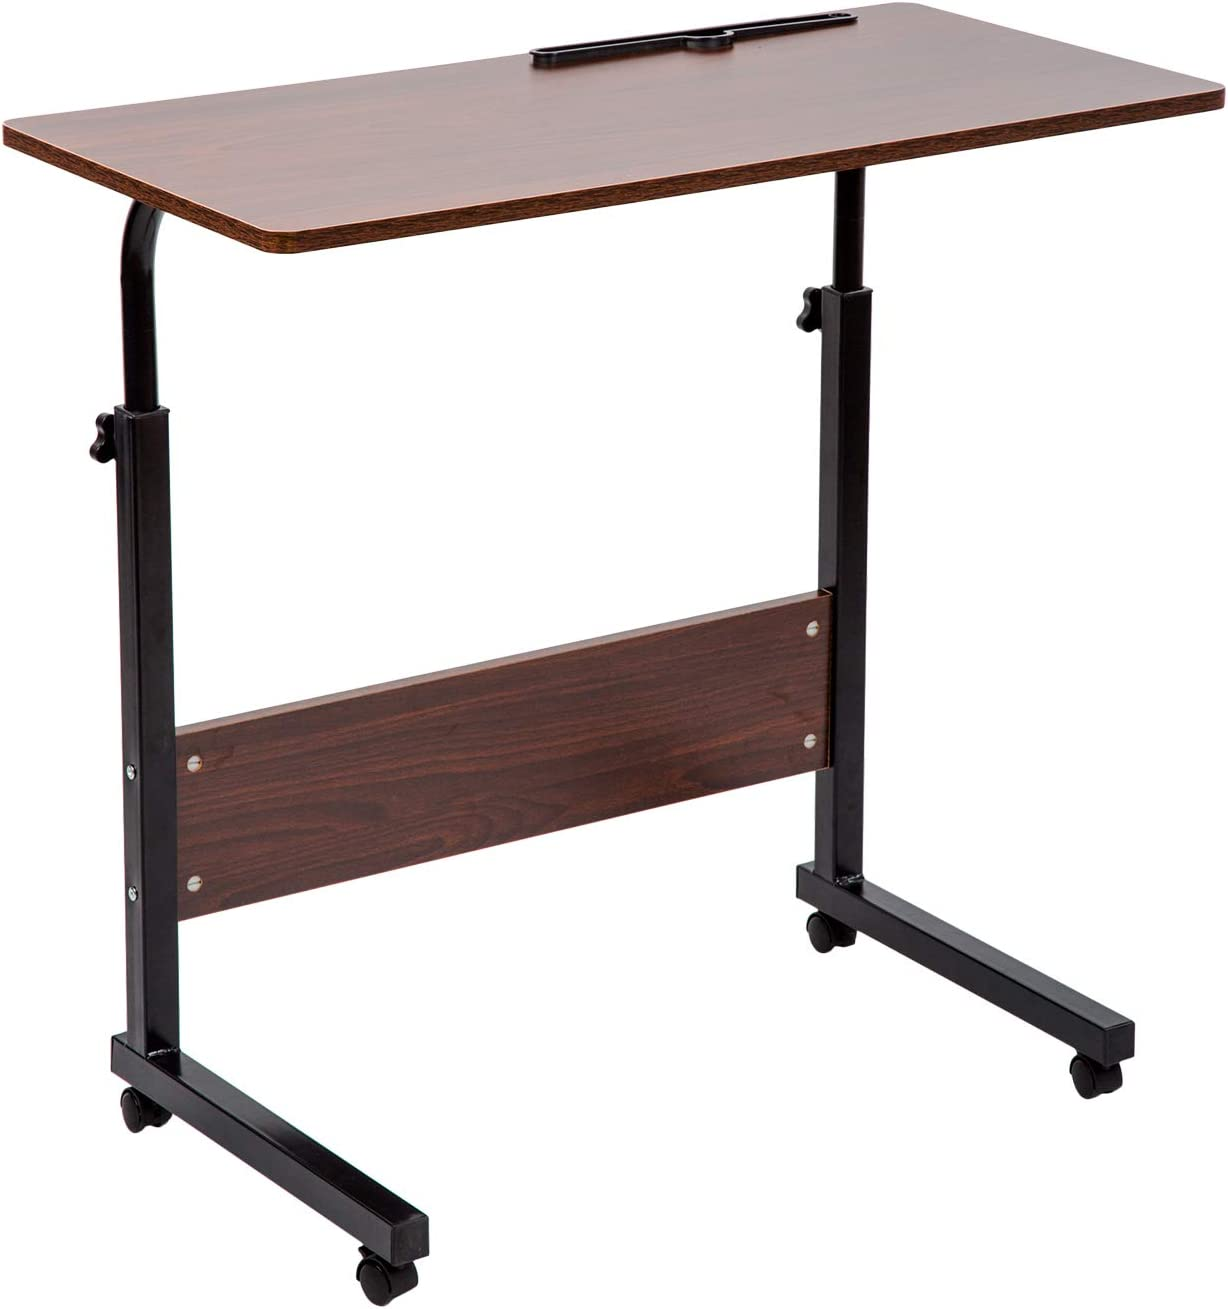 BarleyHome Tray Table, Adjustable Sofa Side Bed Table Portable Desk with Wheels Overbed Table Laptop Cart, Red Walnut, 31.5 x 15.7 in Desktop